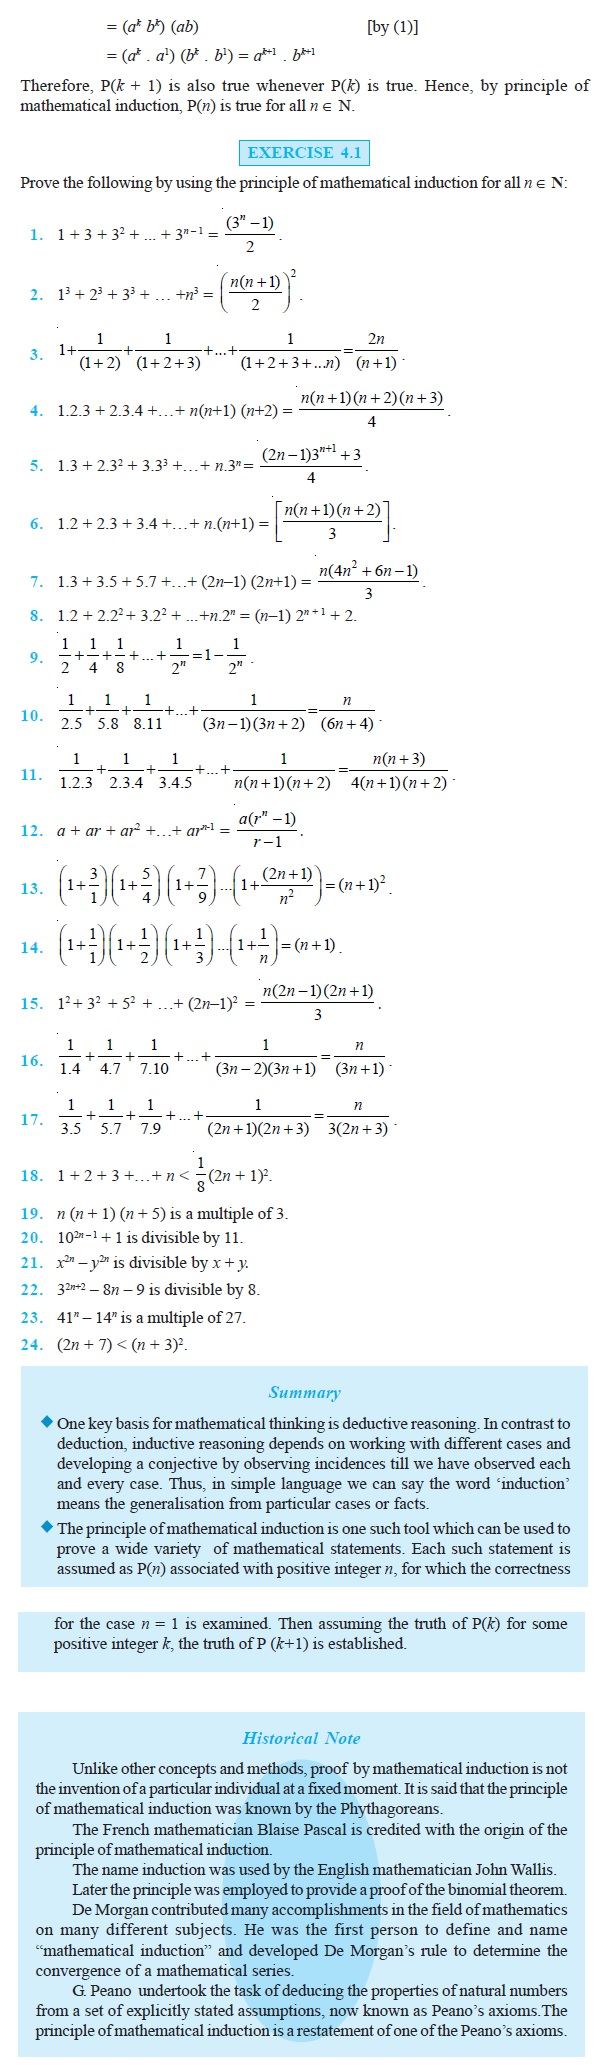 NCERT Class XI Mathematics Chapter 4 – Principle of Mathematical Induction